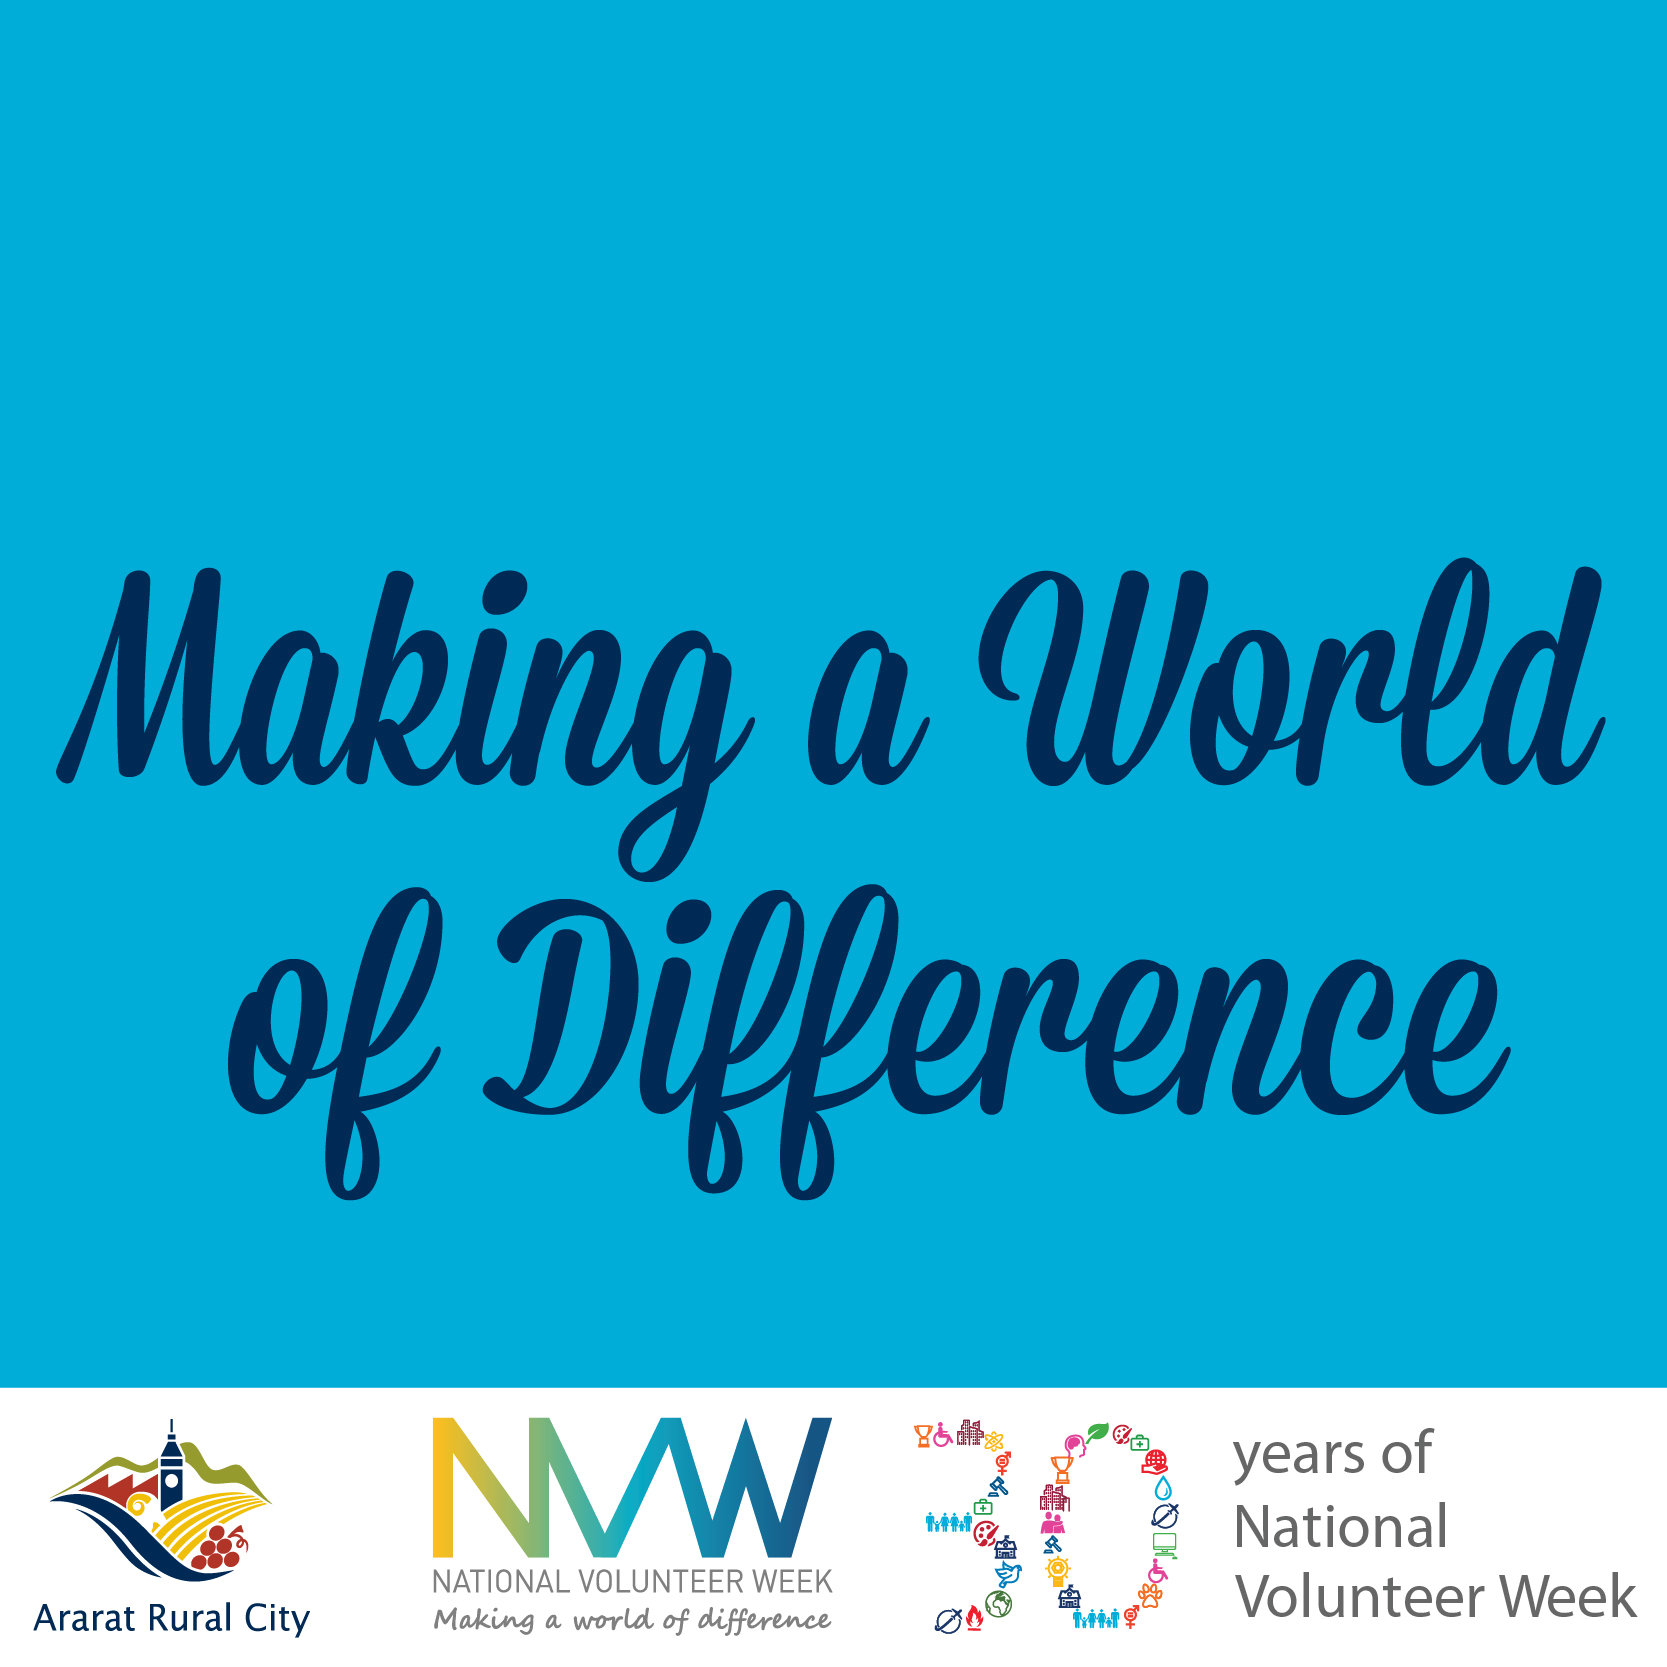 Dedicated community members to be thanked during National Volunteers Week